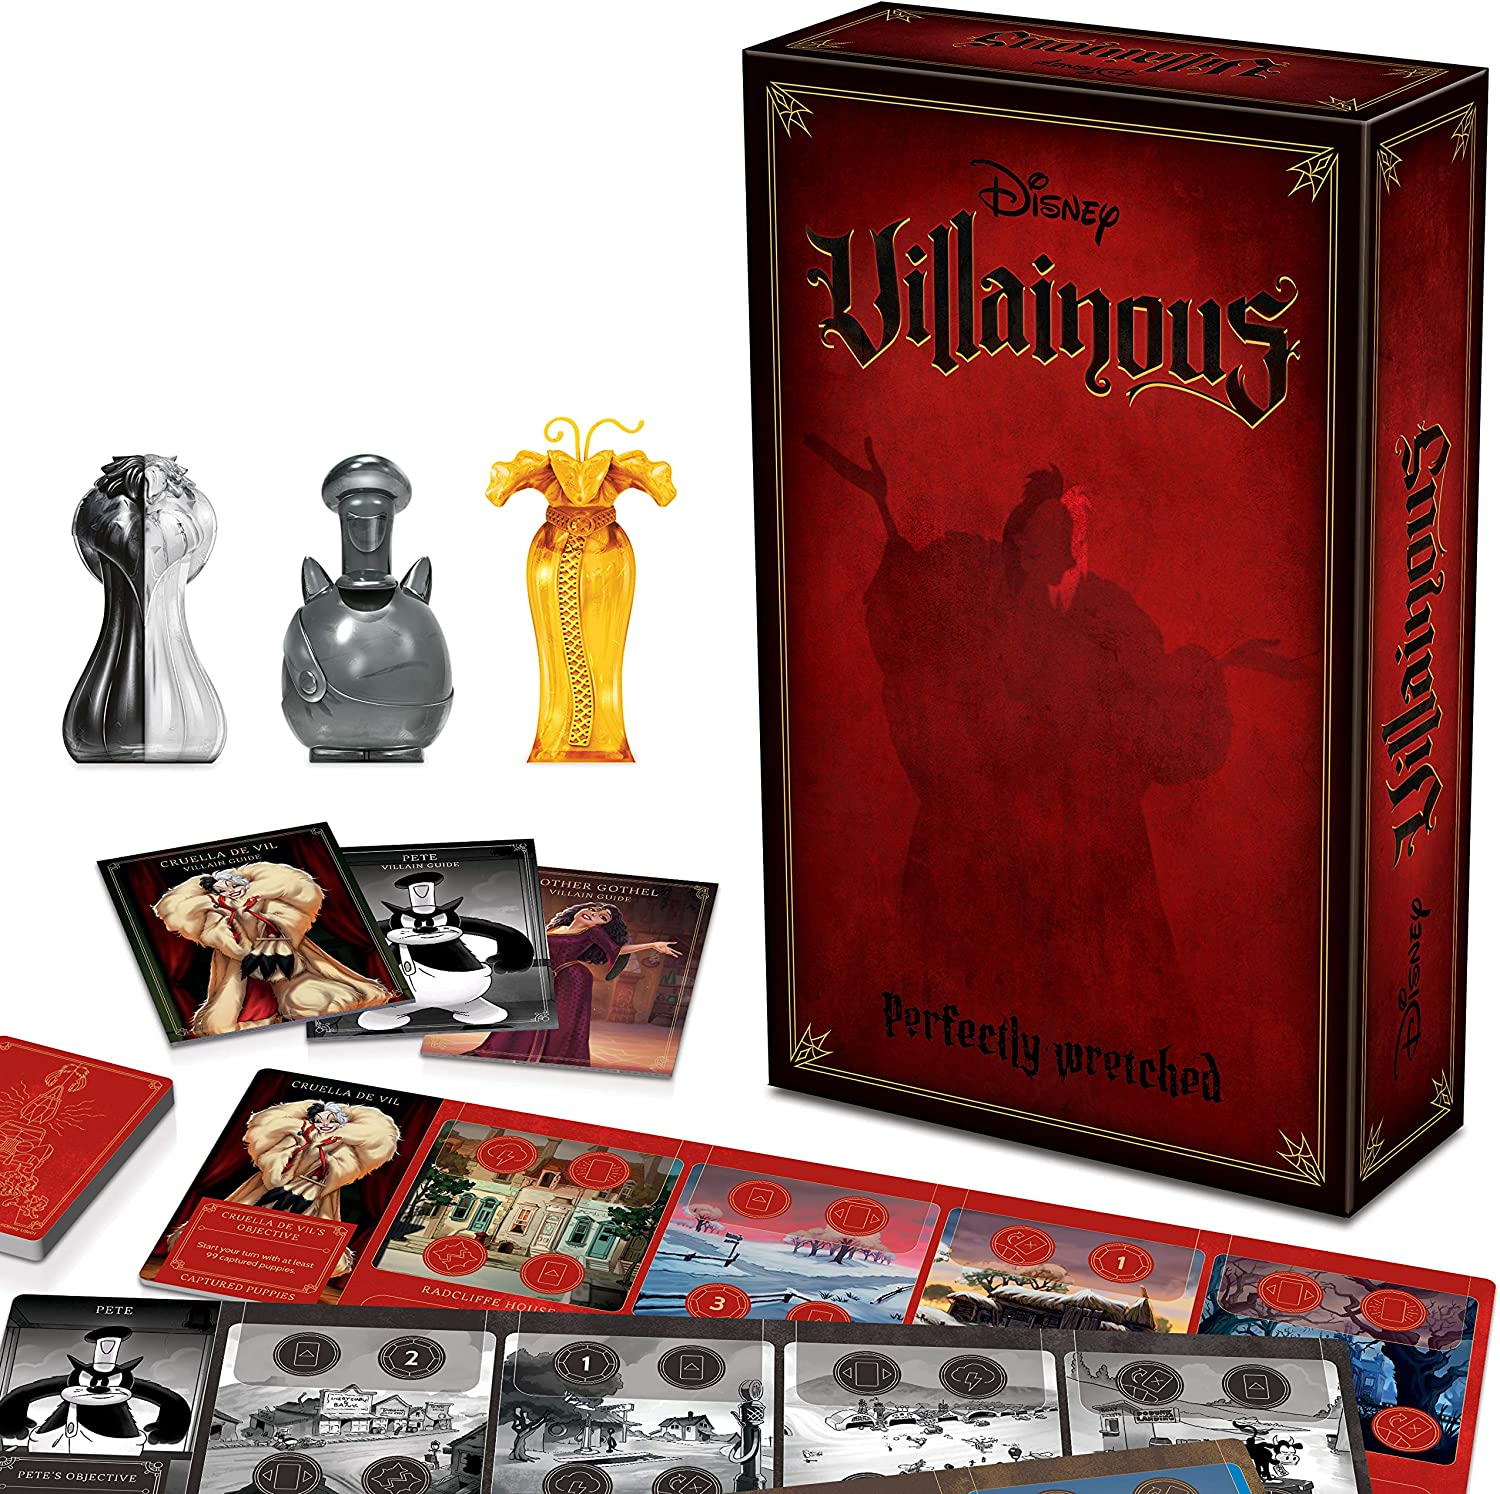 Ravensburger Disney Villainous: Perfectly Wretched Strategy Board Game for Age 10 & Up - Stand-Alone & Expansion to The 2019 Toty Game of The Year Award Winner